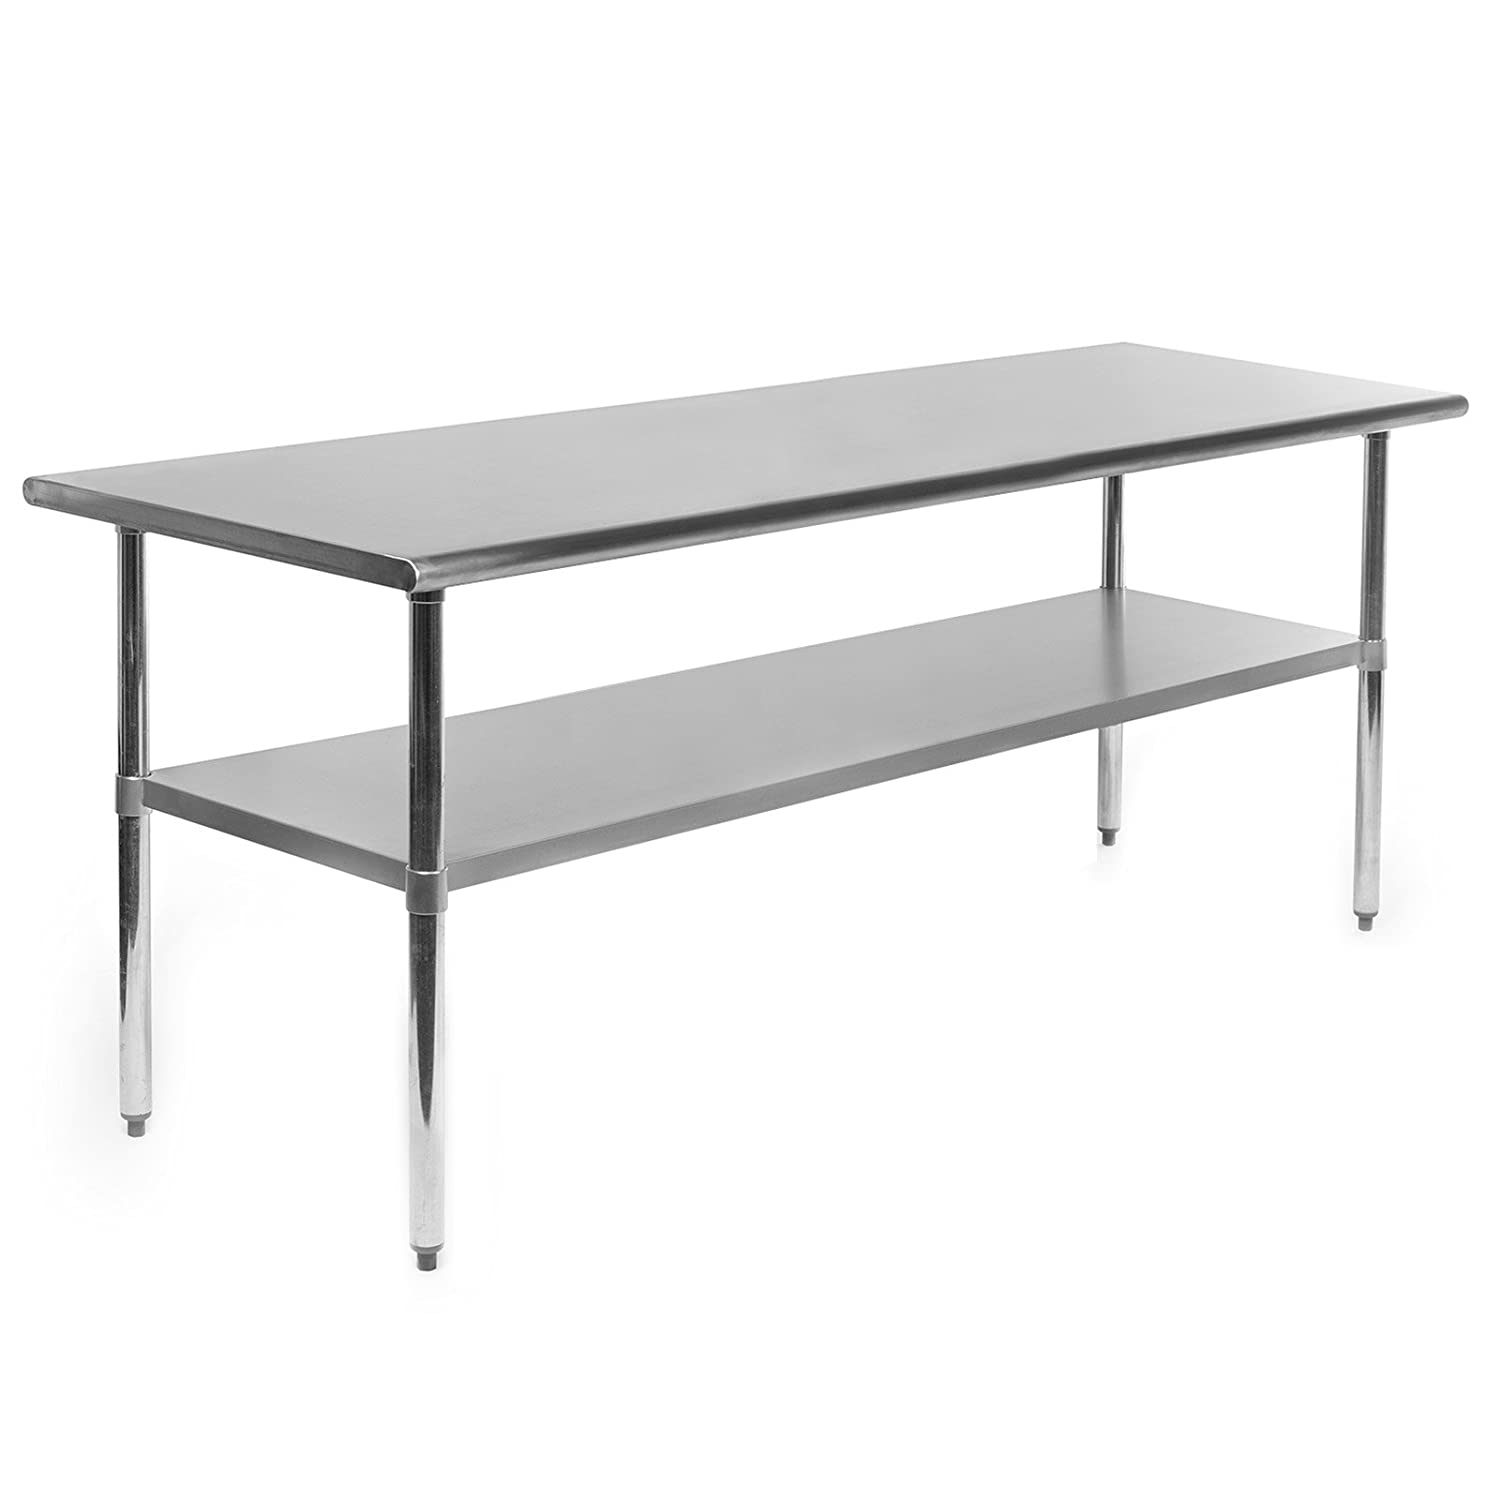 kitchen prep table narrow amazoncom gridmann nsf stainless steel commercial kitchen prep work table 72 in 30 in industrial scientific